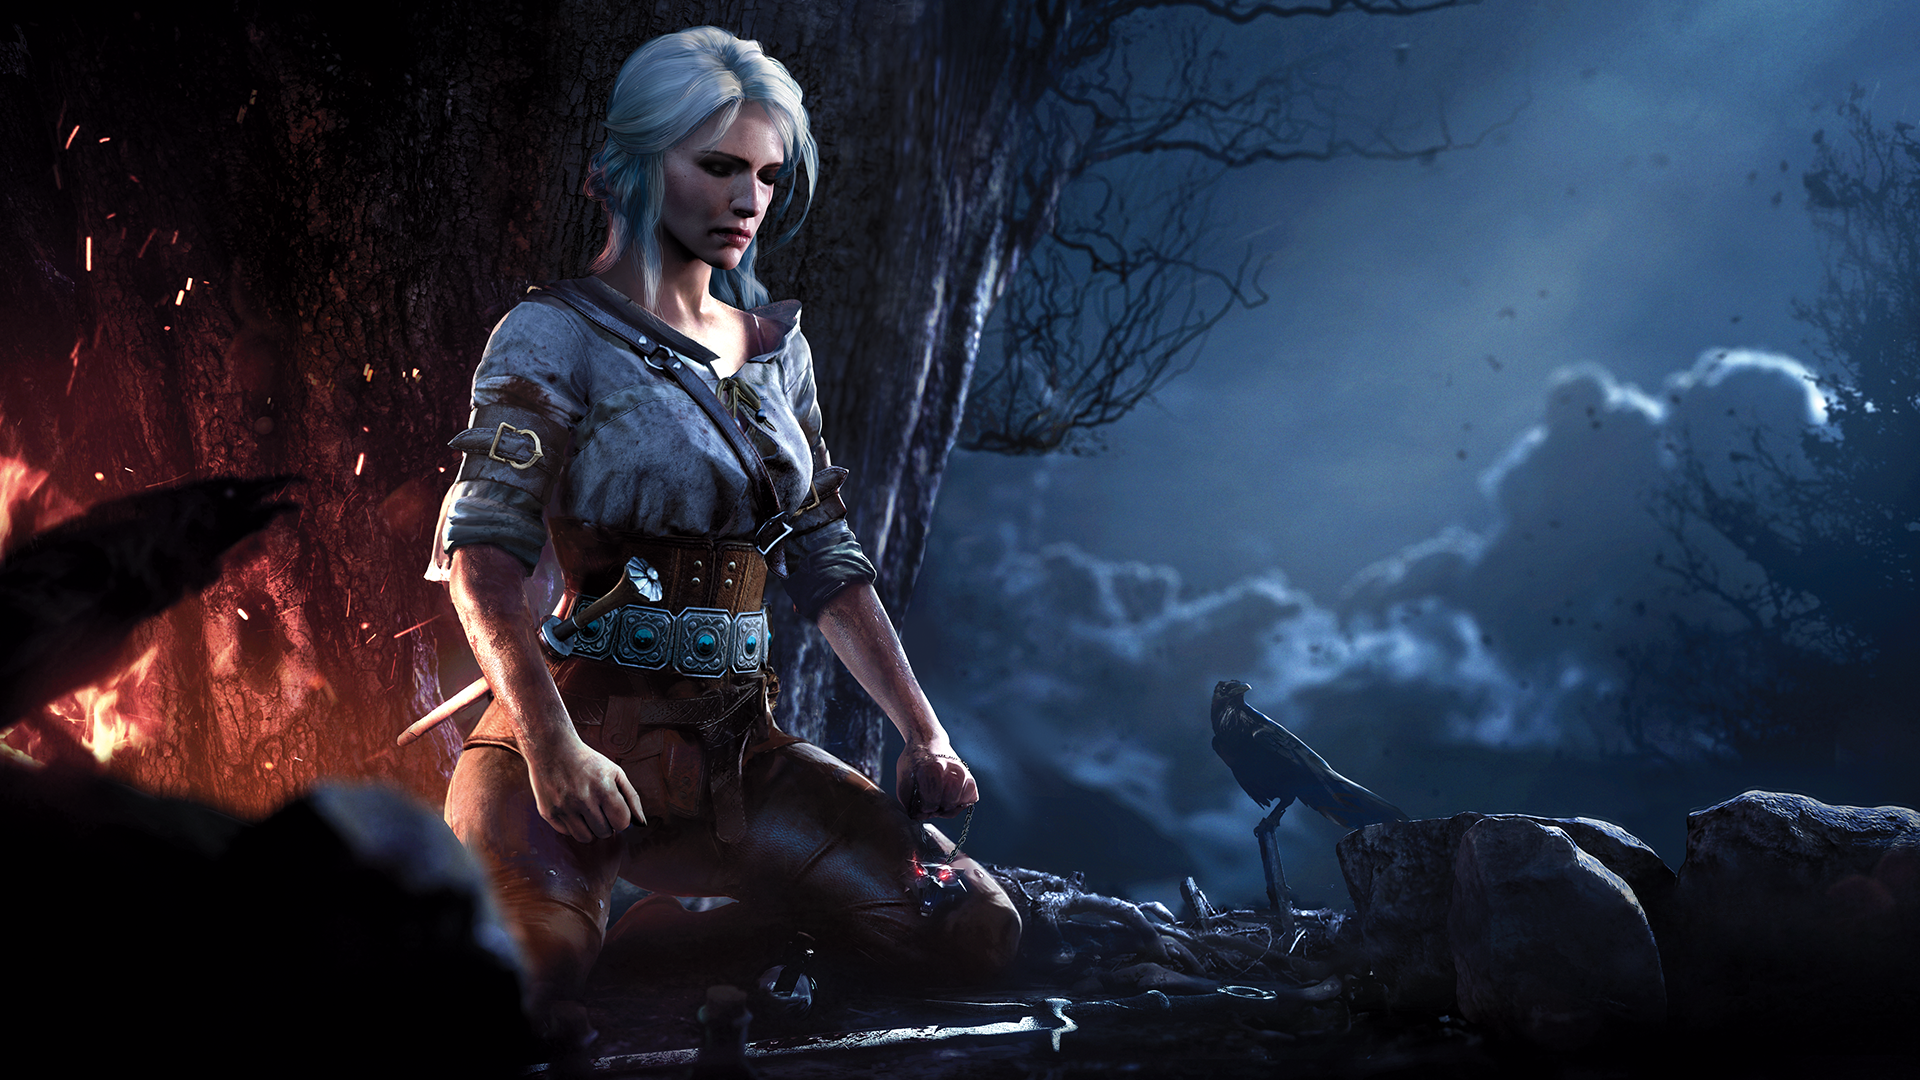 Ciri meditating wallpaper Witcher The witcher The witcher 1920x1080